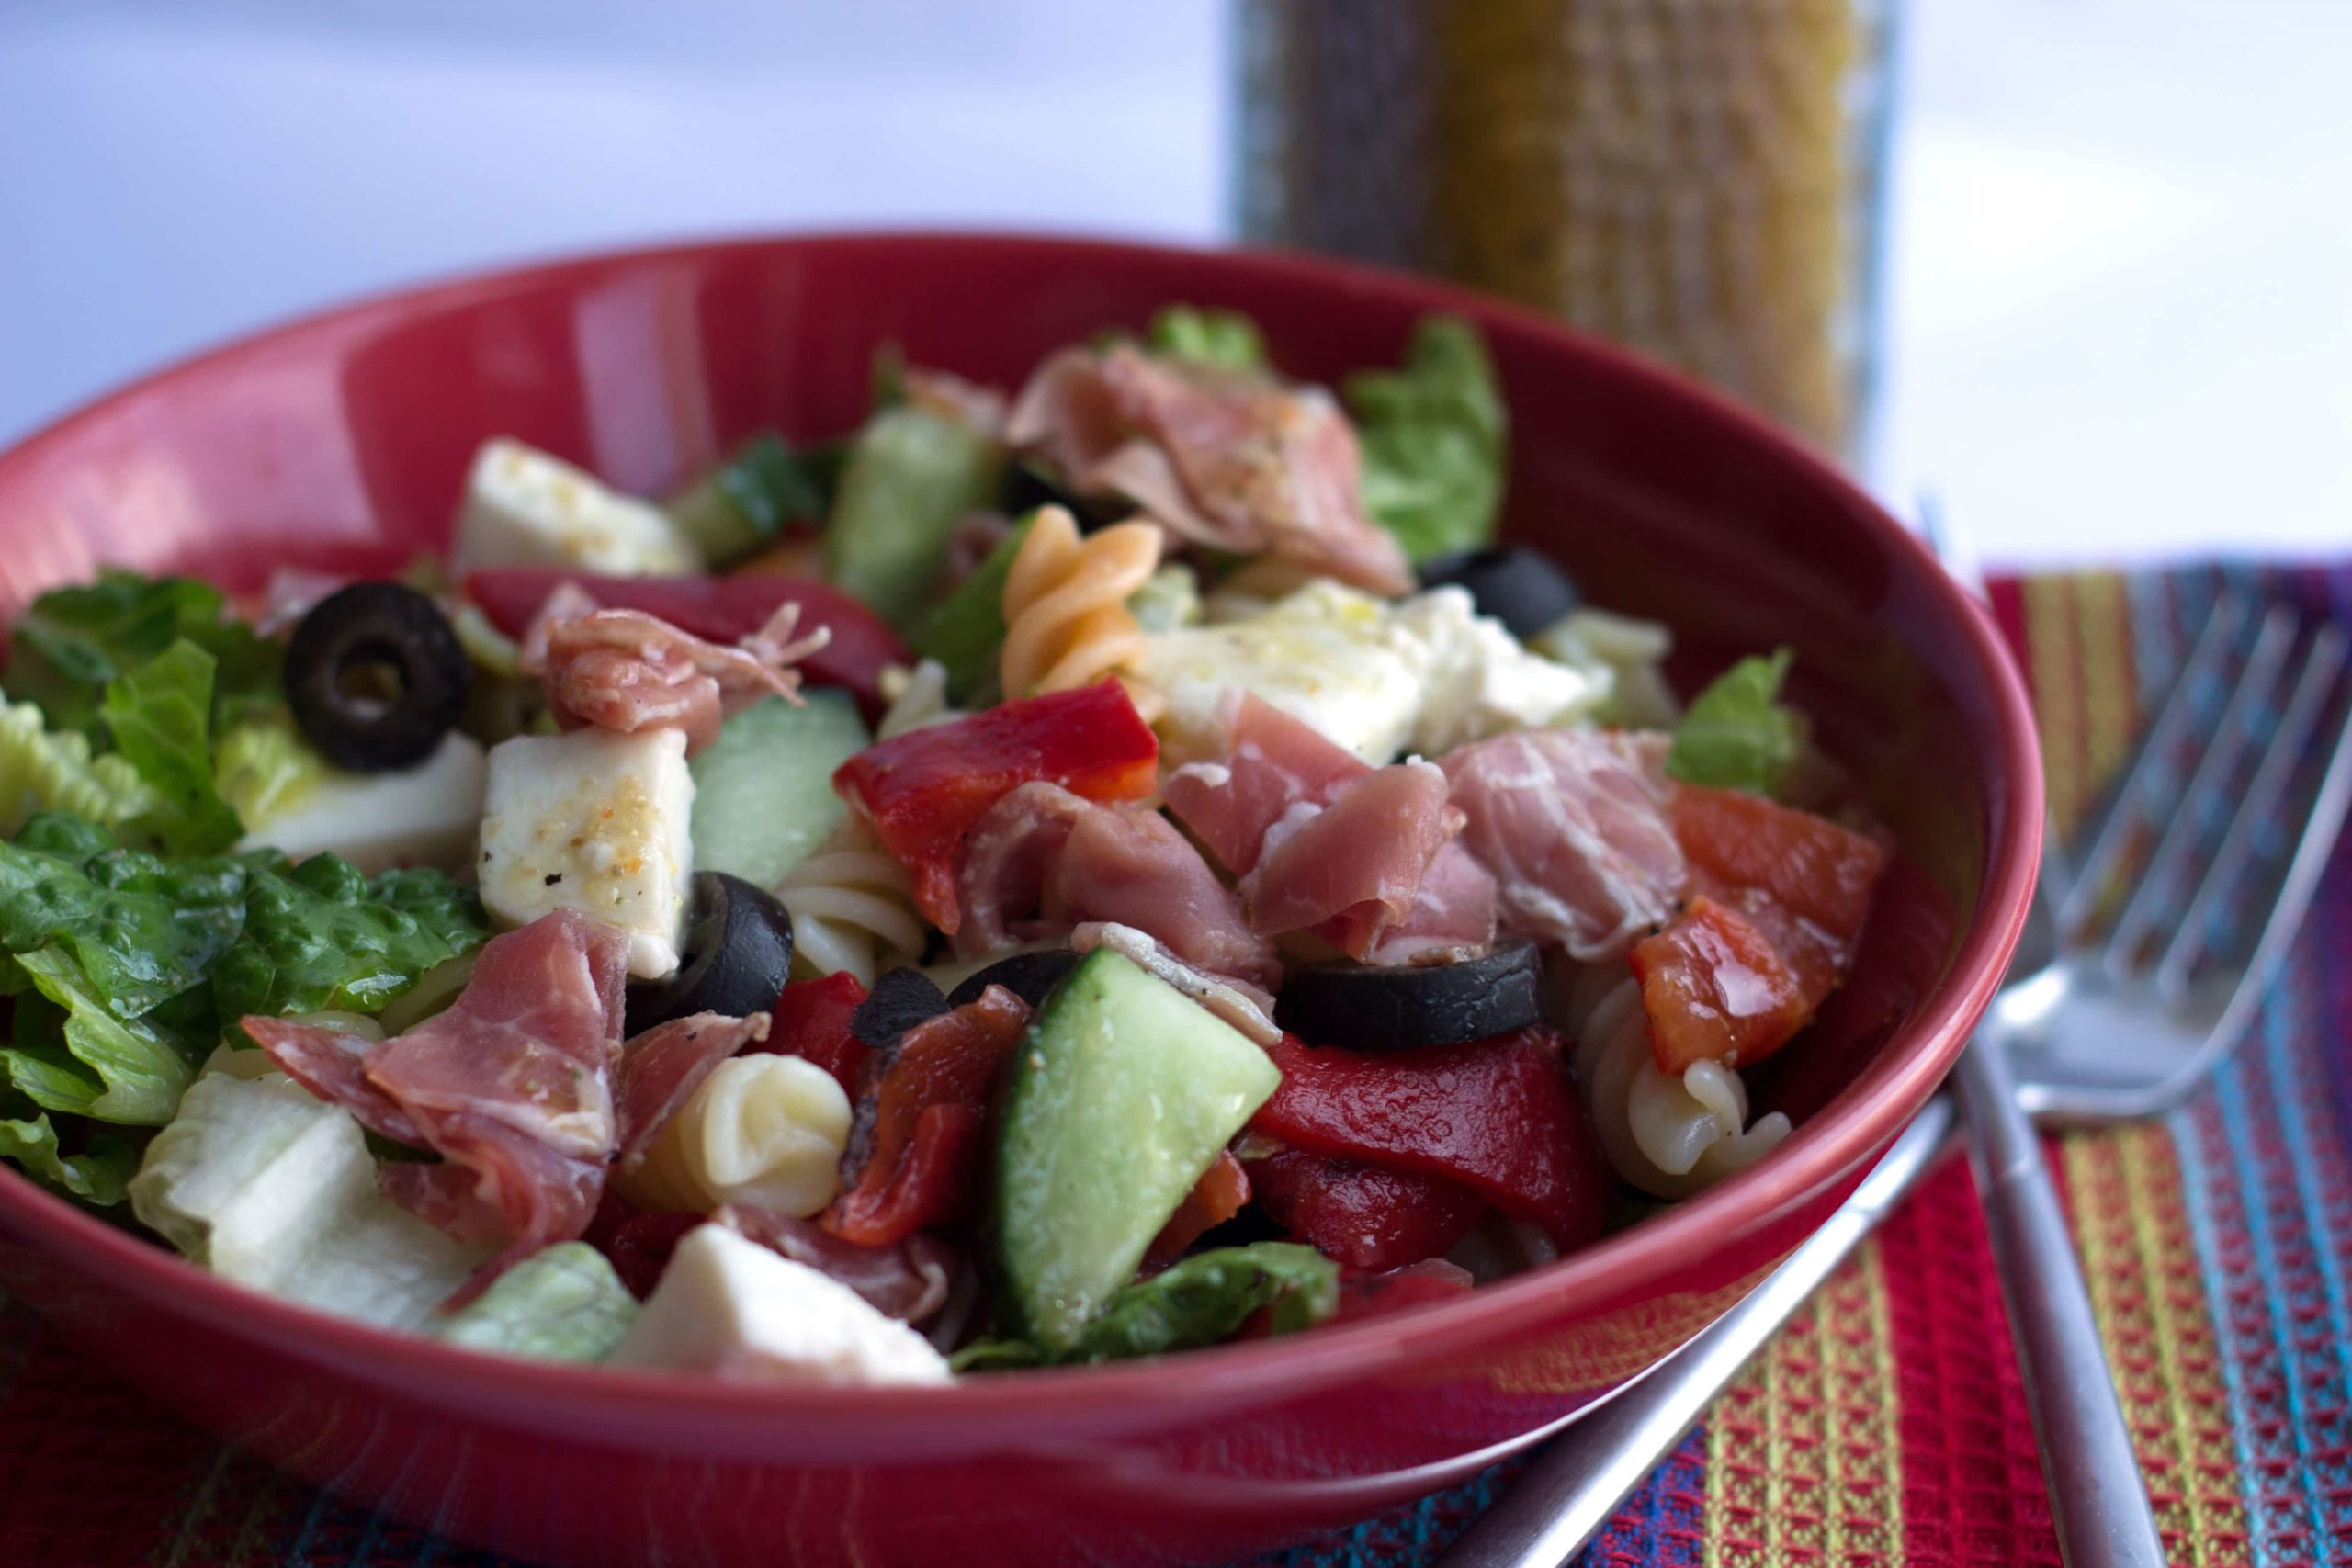 Antipasto Pasta Salad in a maroon colored bowl with forks next to it